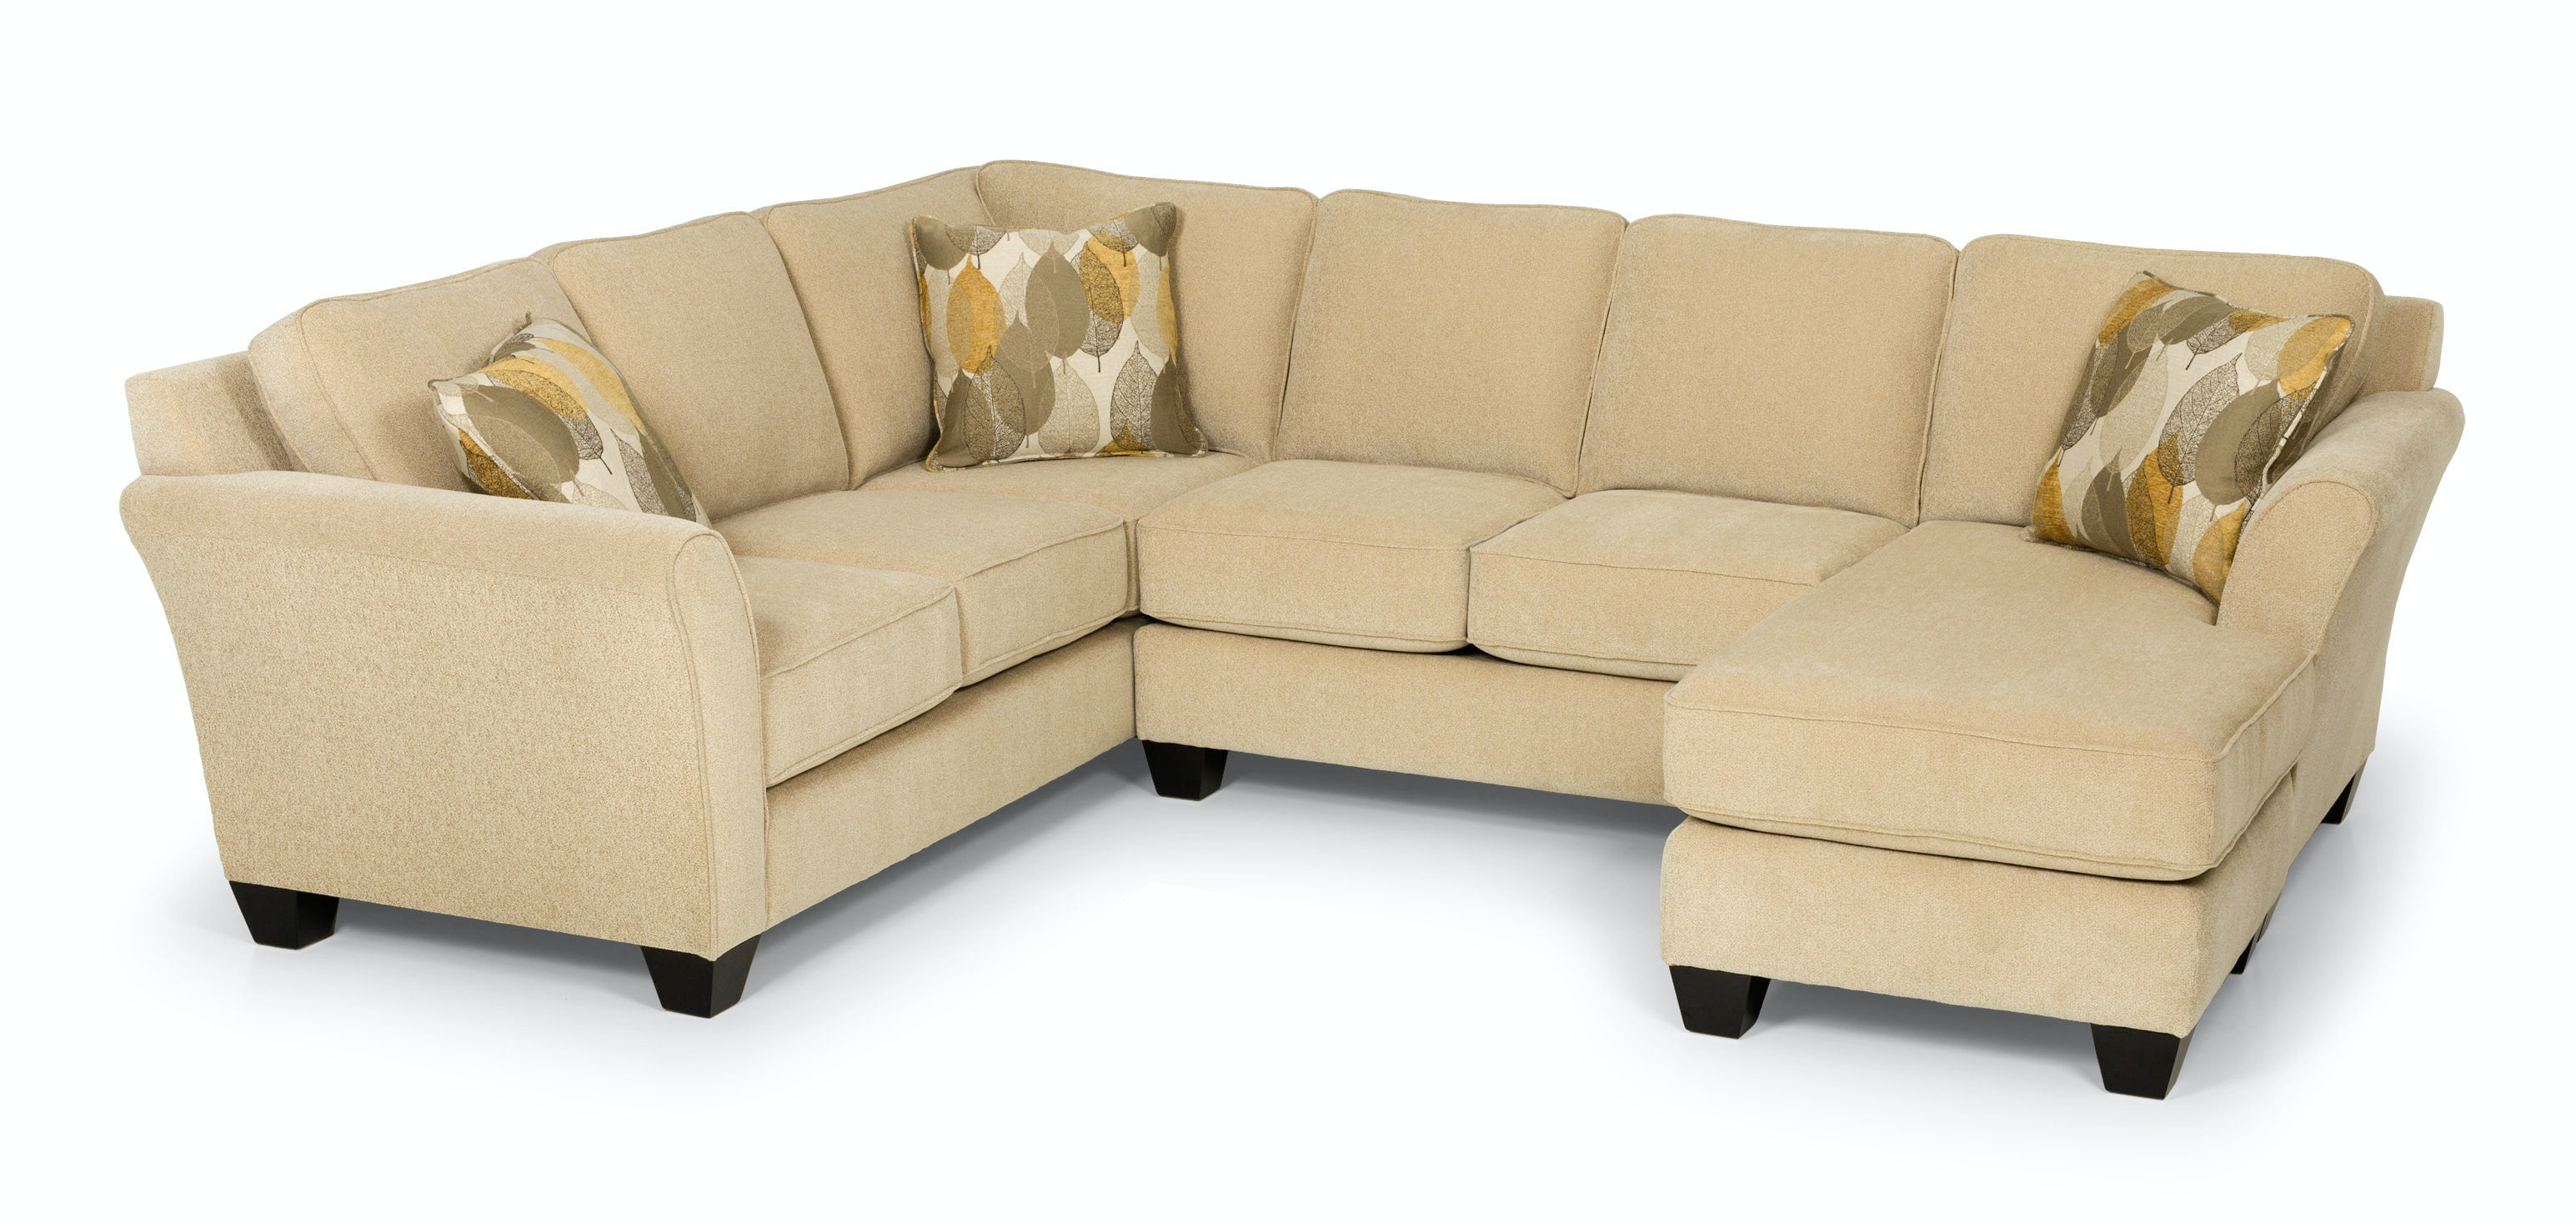 184-Sectional  sc 1 st  Gerberu0027s Furniture : stanton 186 sectional - Sectionals, Sofas & Couches